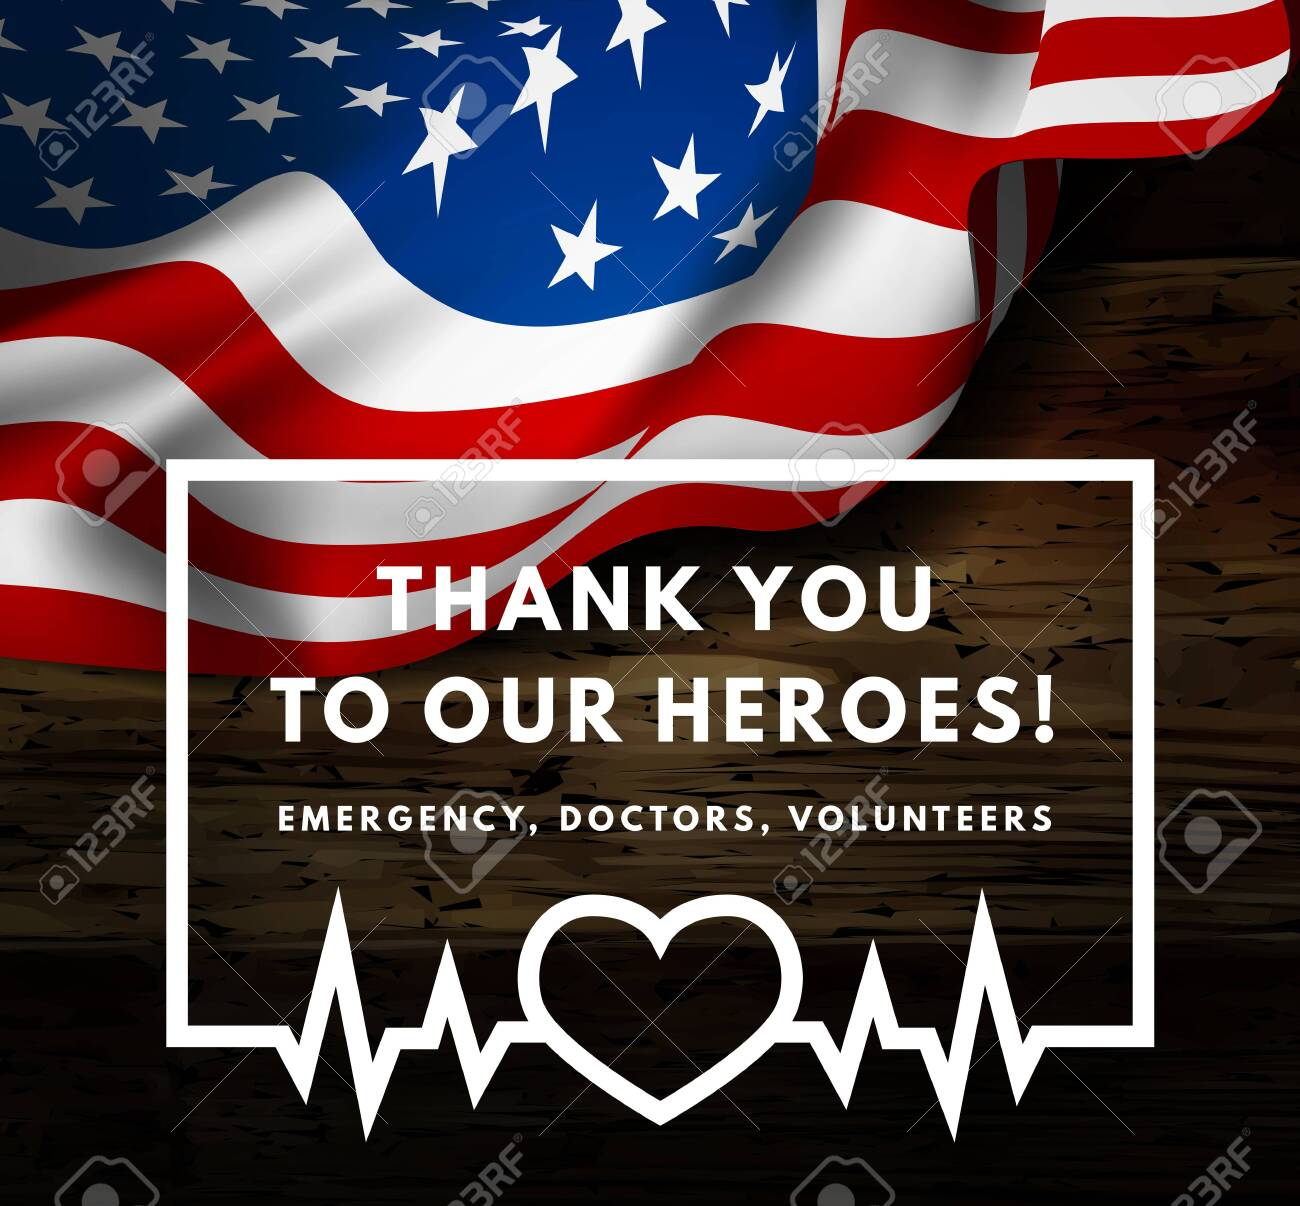 Thanks for the heroes helping to fight the coronavirus. OVID-19. SARS-COV-2. Respect emergency, doctors, volunteers, etc. Vector illustration with USA flag on background. - 144018841